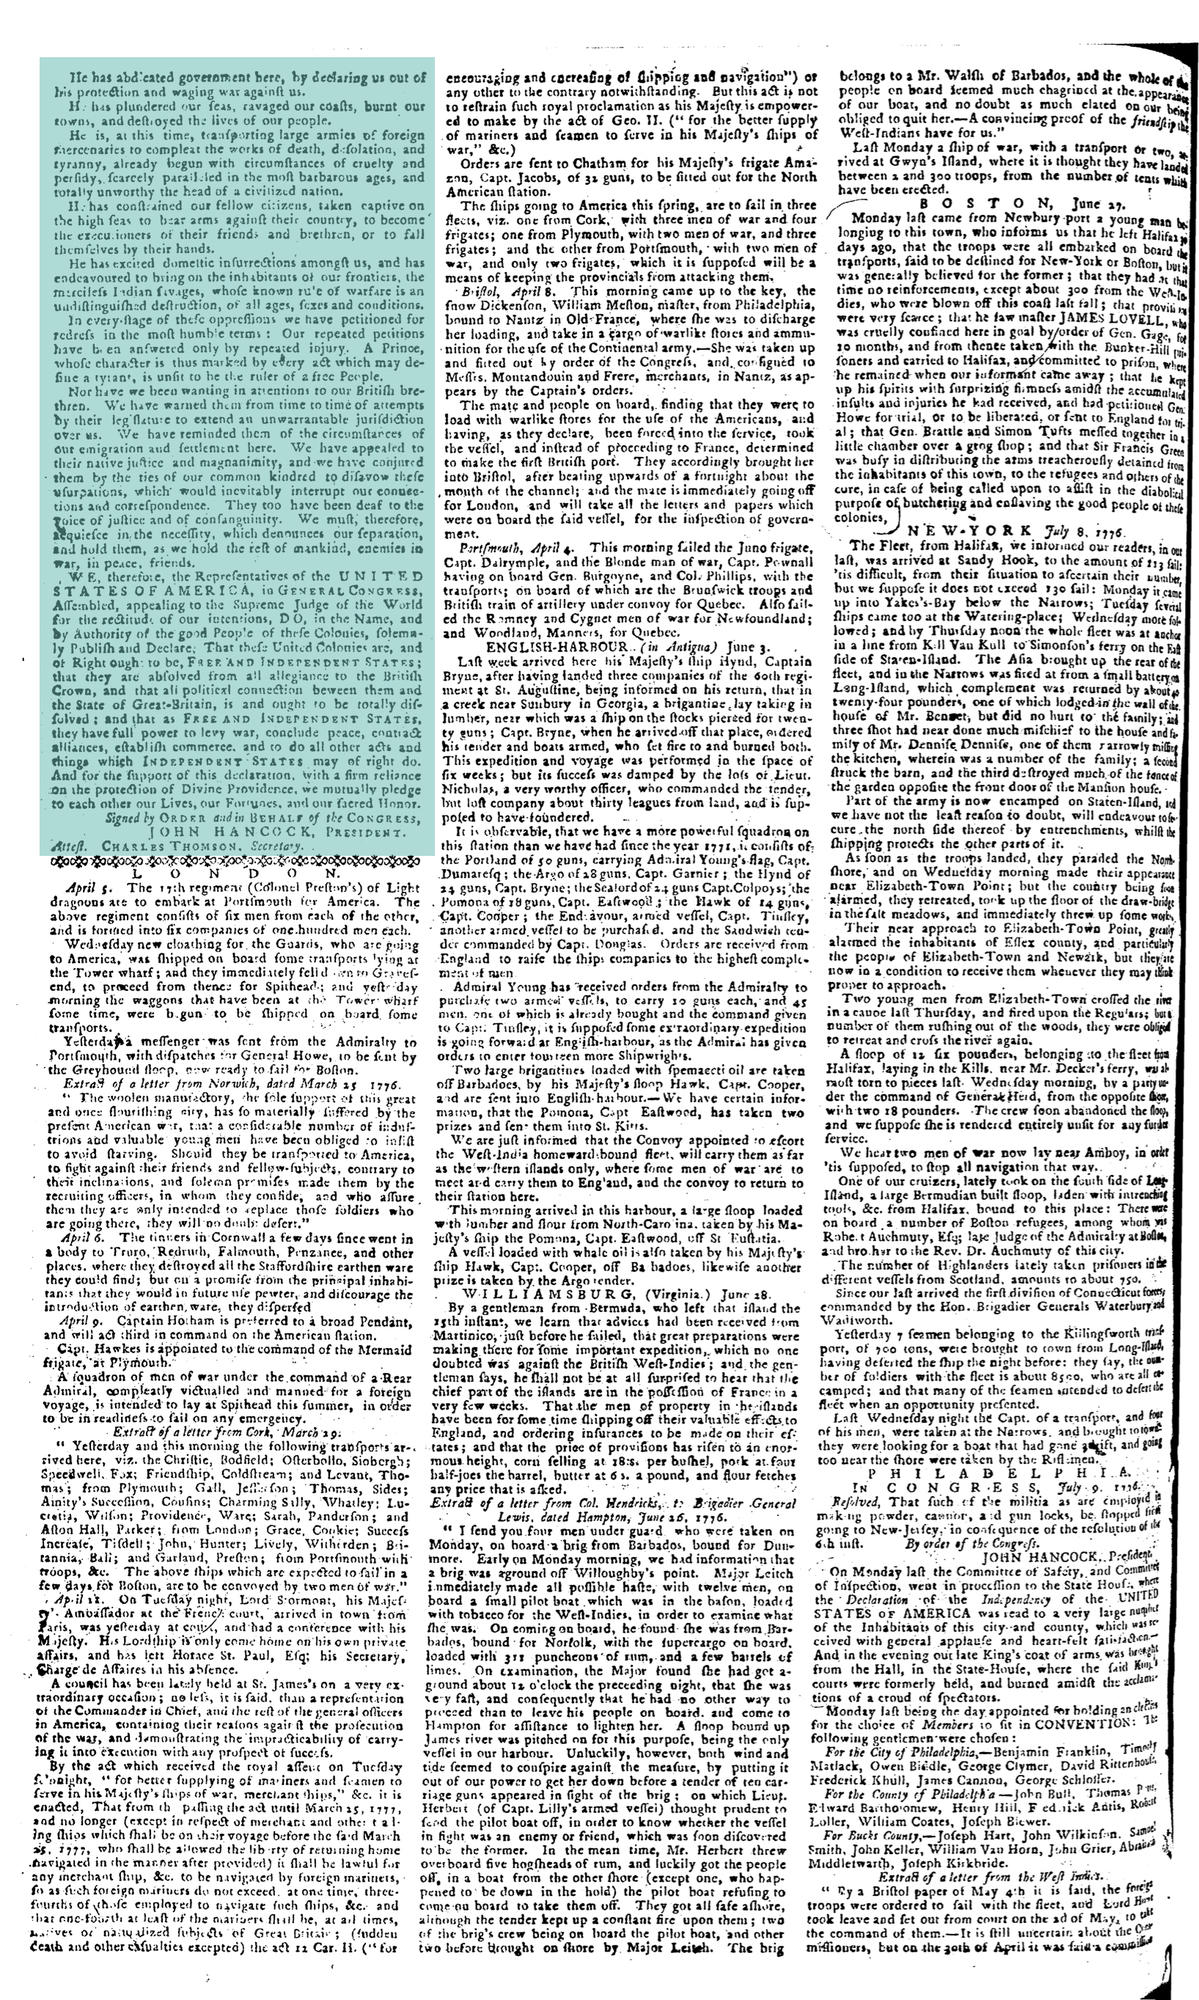 Second Page of Pennsylvania Journal, July 10, 1776